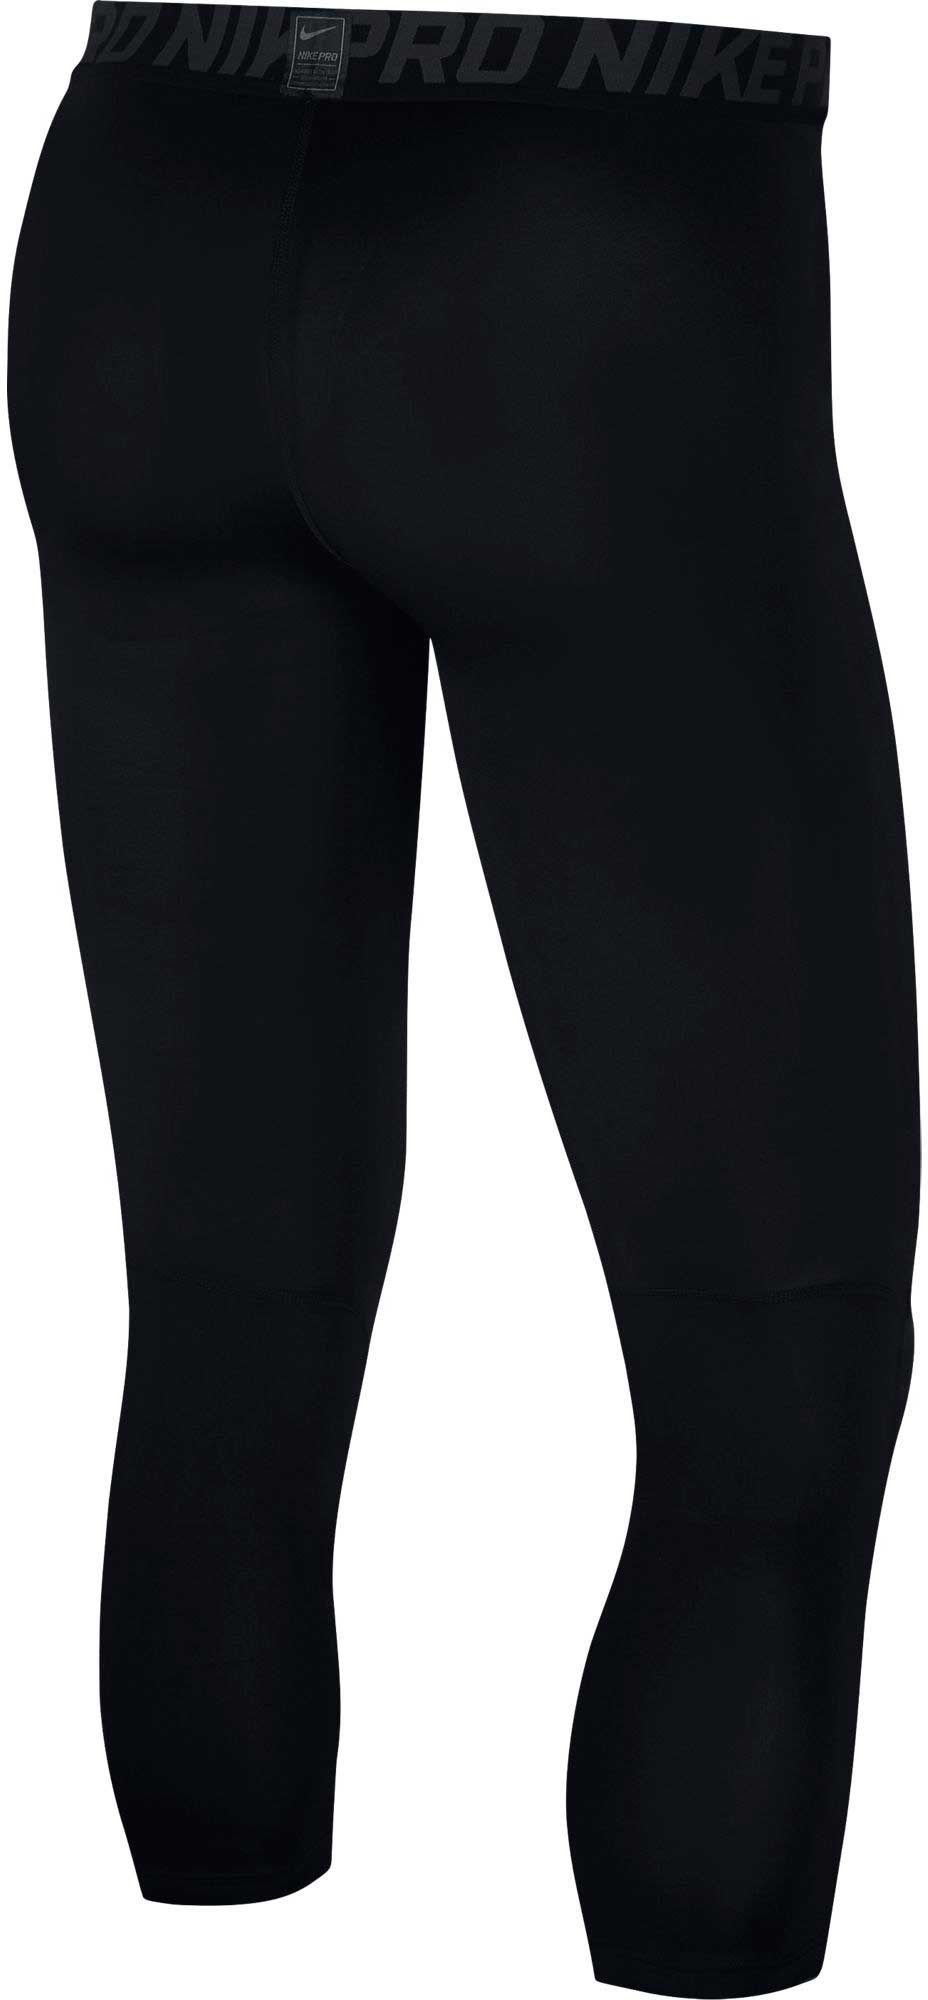 Nike Men's Pro 3qt Tight (Black/Anthracite/White, Small) by Nike (Image #2)